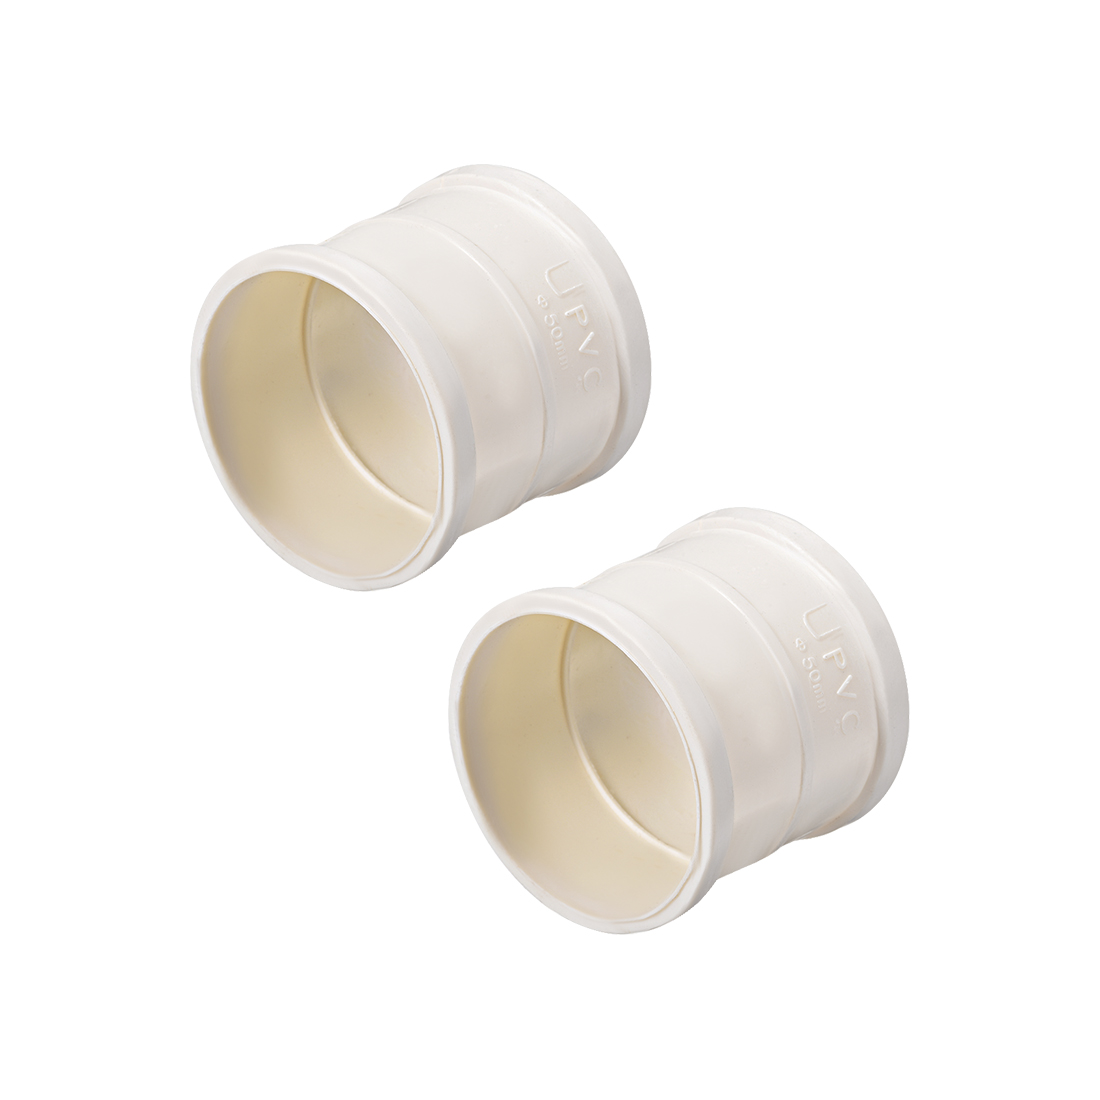 PVC Pipe Fitting Coupling Schedule 40 White 1-1/2-inch Socket 2pcs